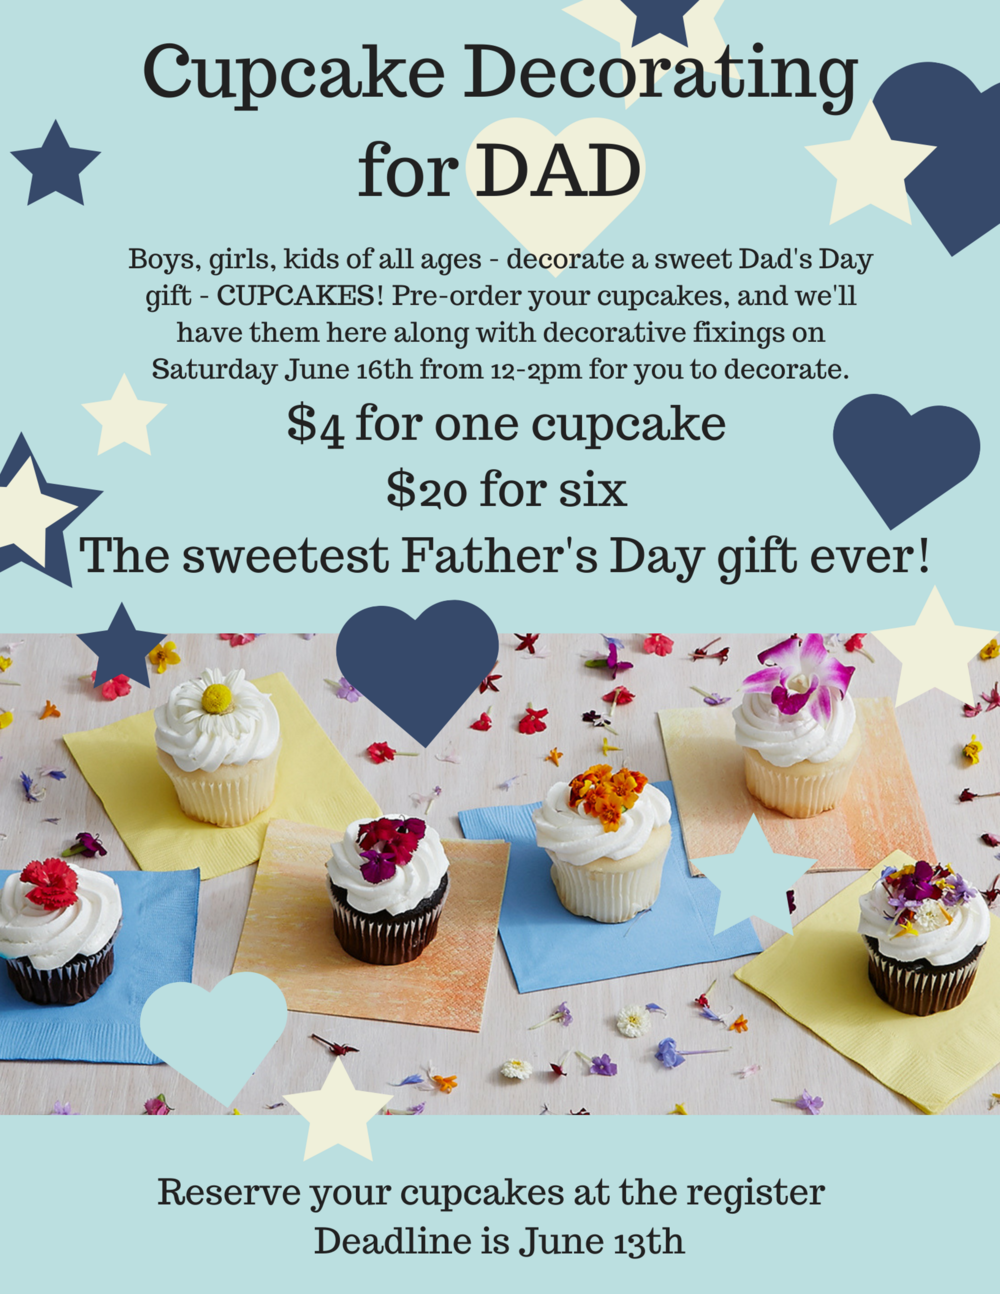 Reserve your cupcakes at the register - deadline is June 14th!.png